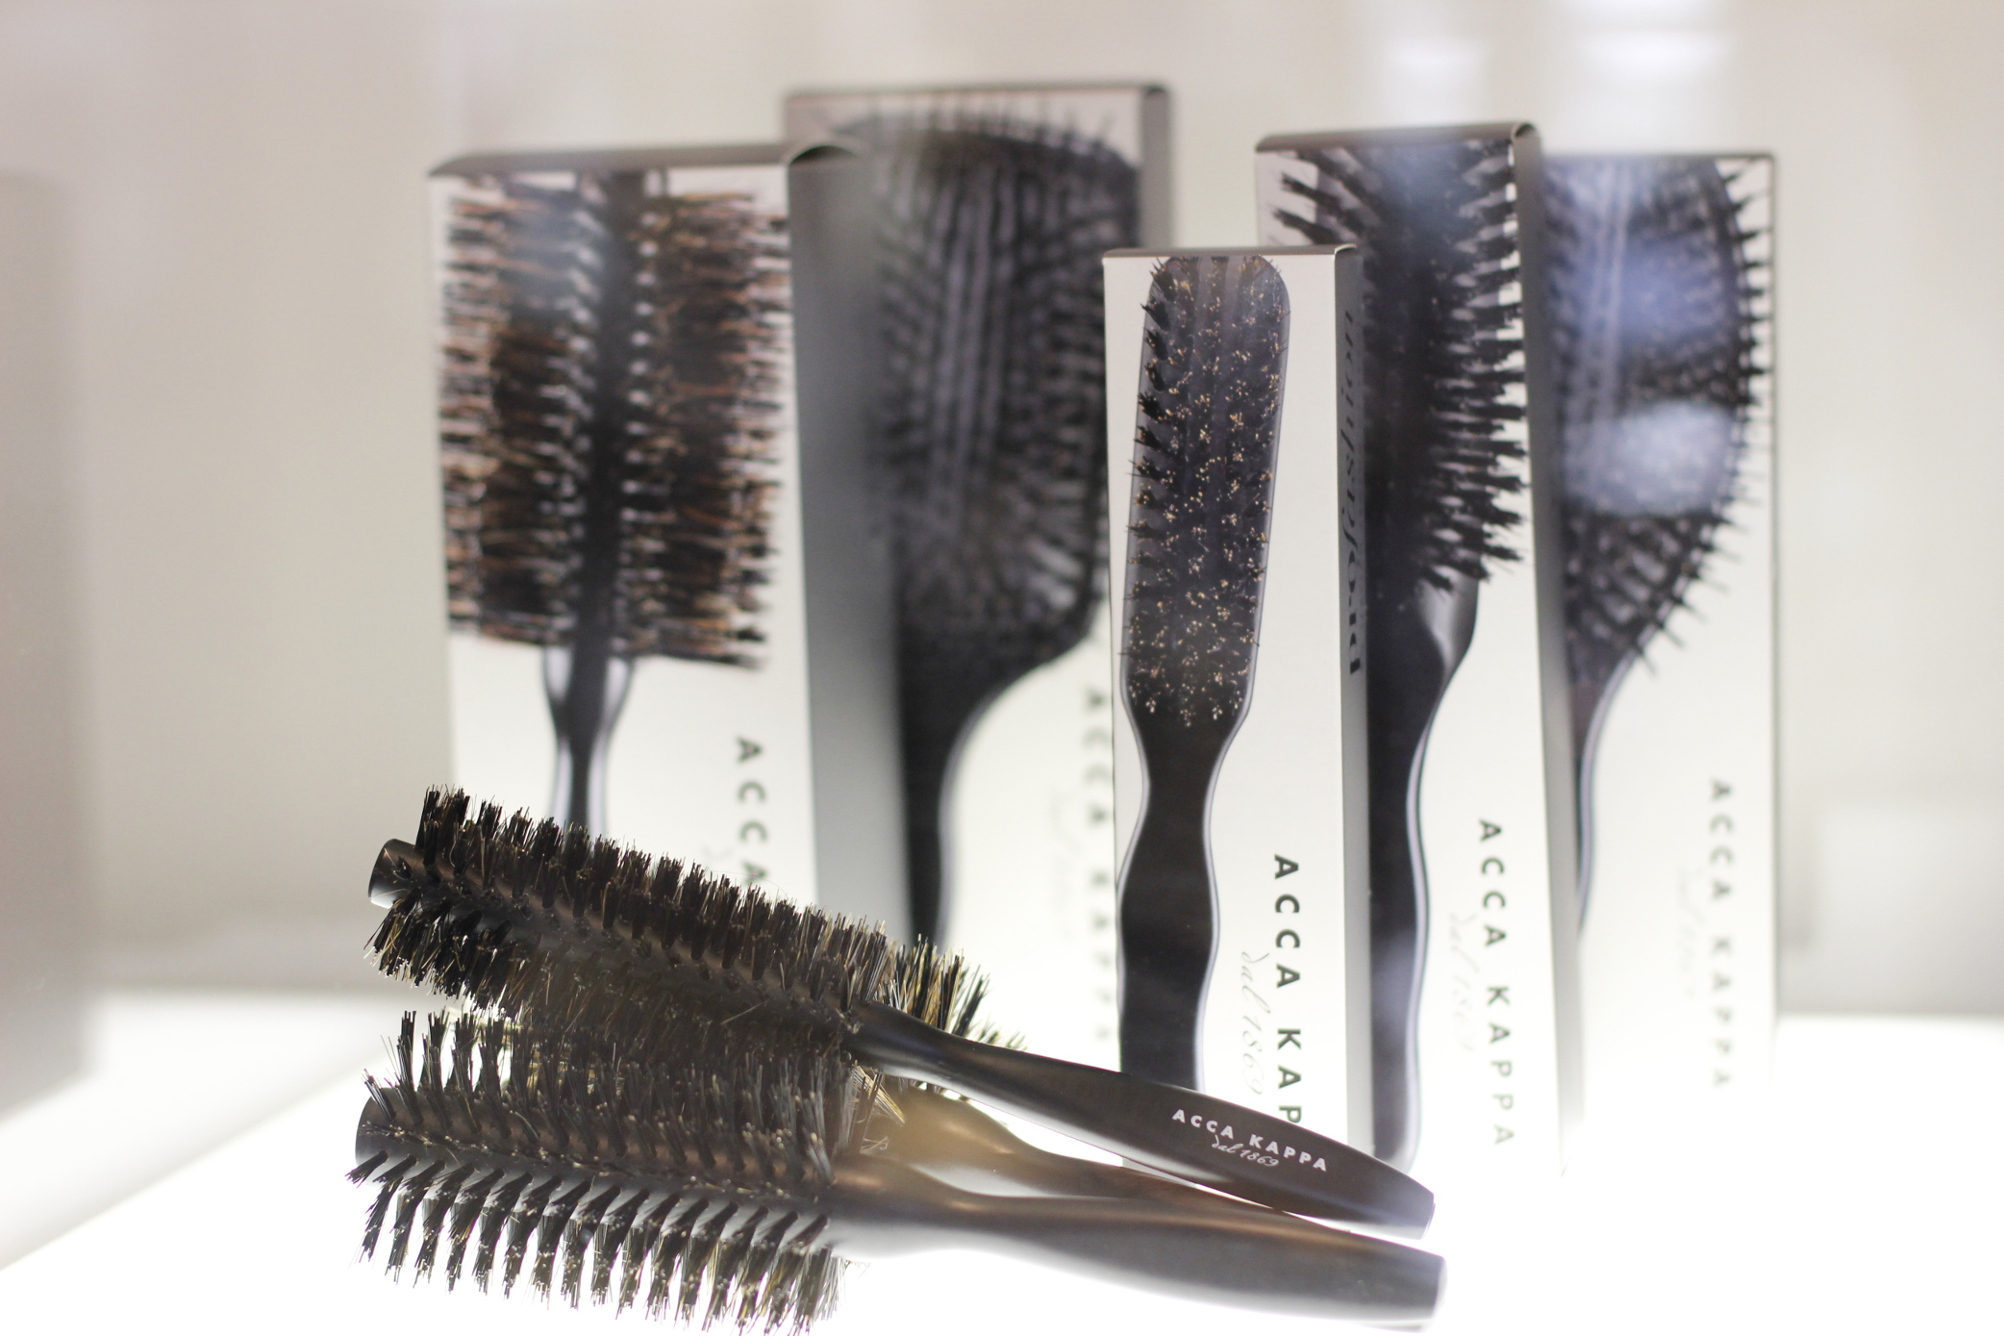 Acca Kappa Hairbrushes / Andre Märtens Friseur